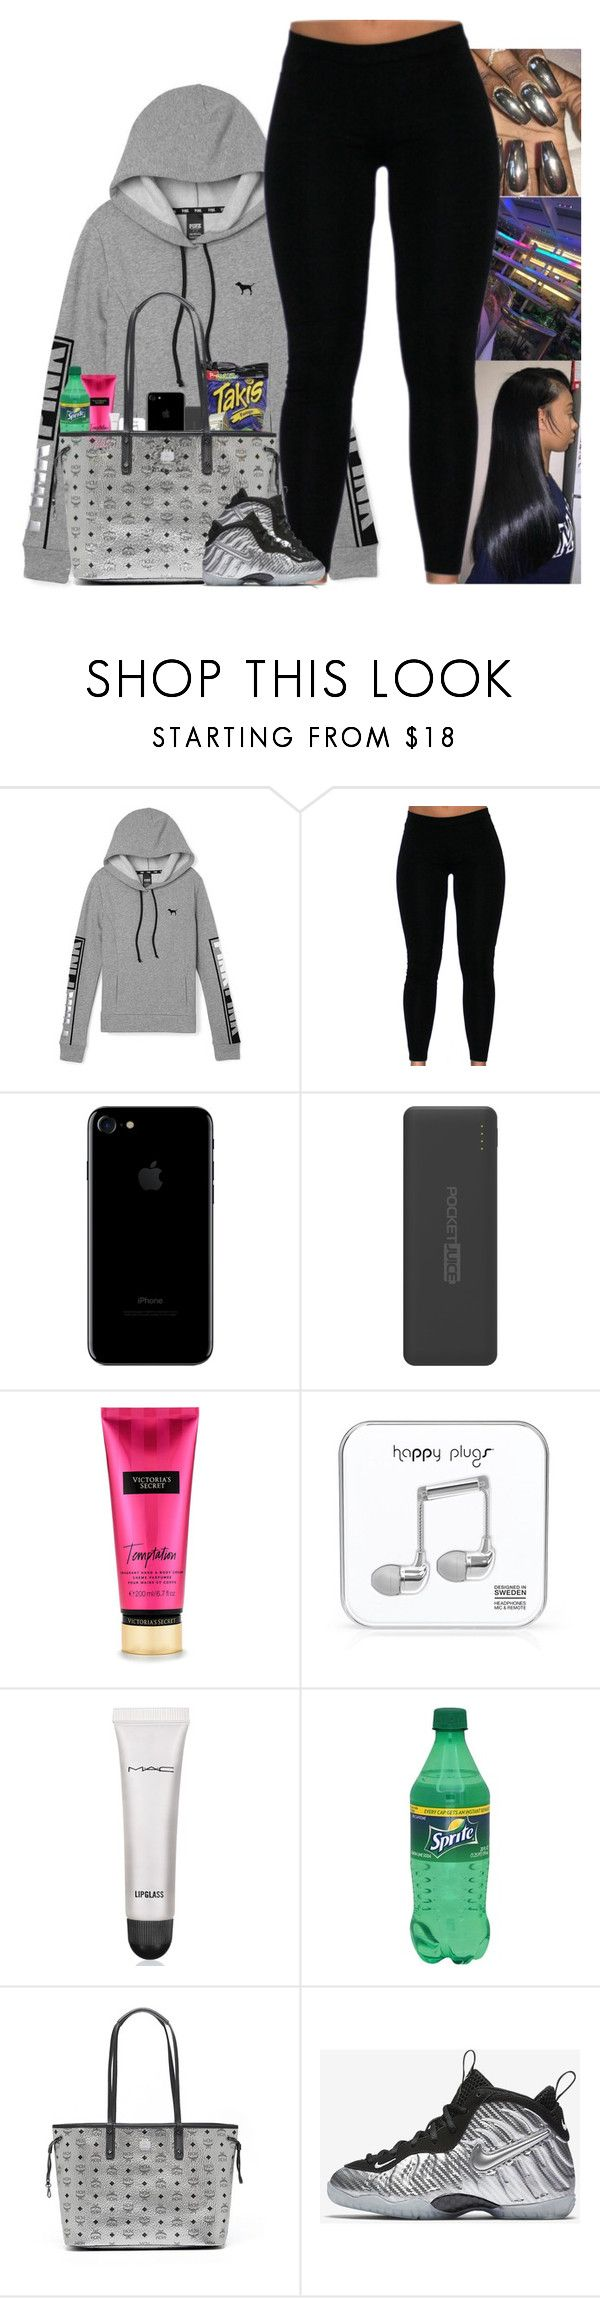 """"""""""" by kennisha84 ❤ liked on Polyvore featuring Fuego, Tzumi, Victoria's Secret, Happy Plugs, MAC Cosmetics, MCM and NIKE"""